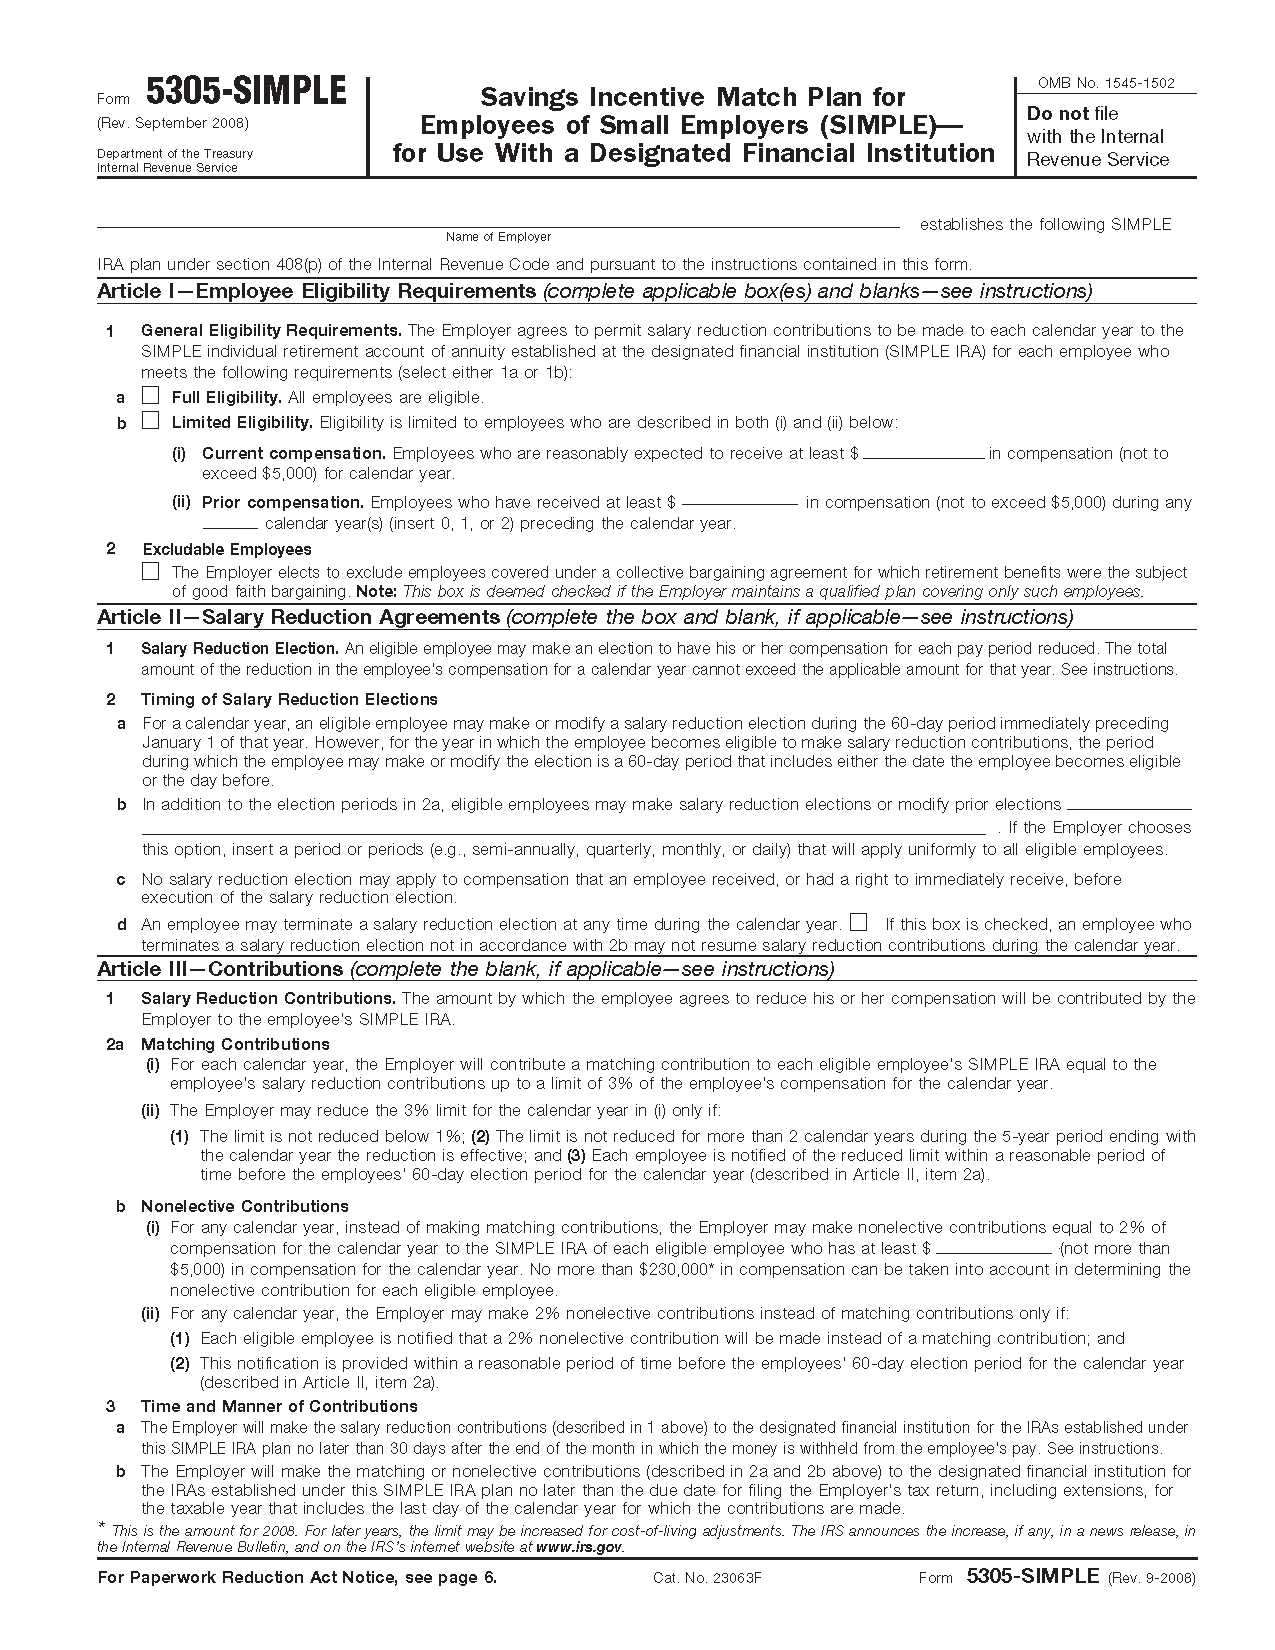 irs form 5305 simple - Mersn.proforum.co